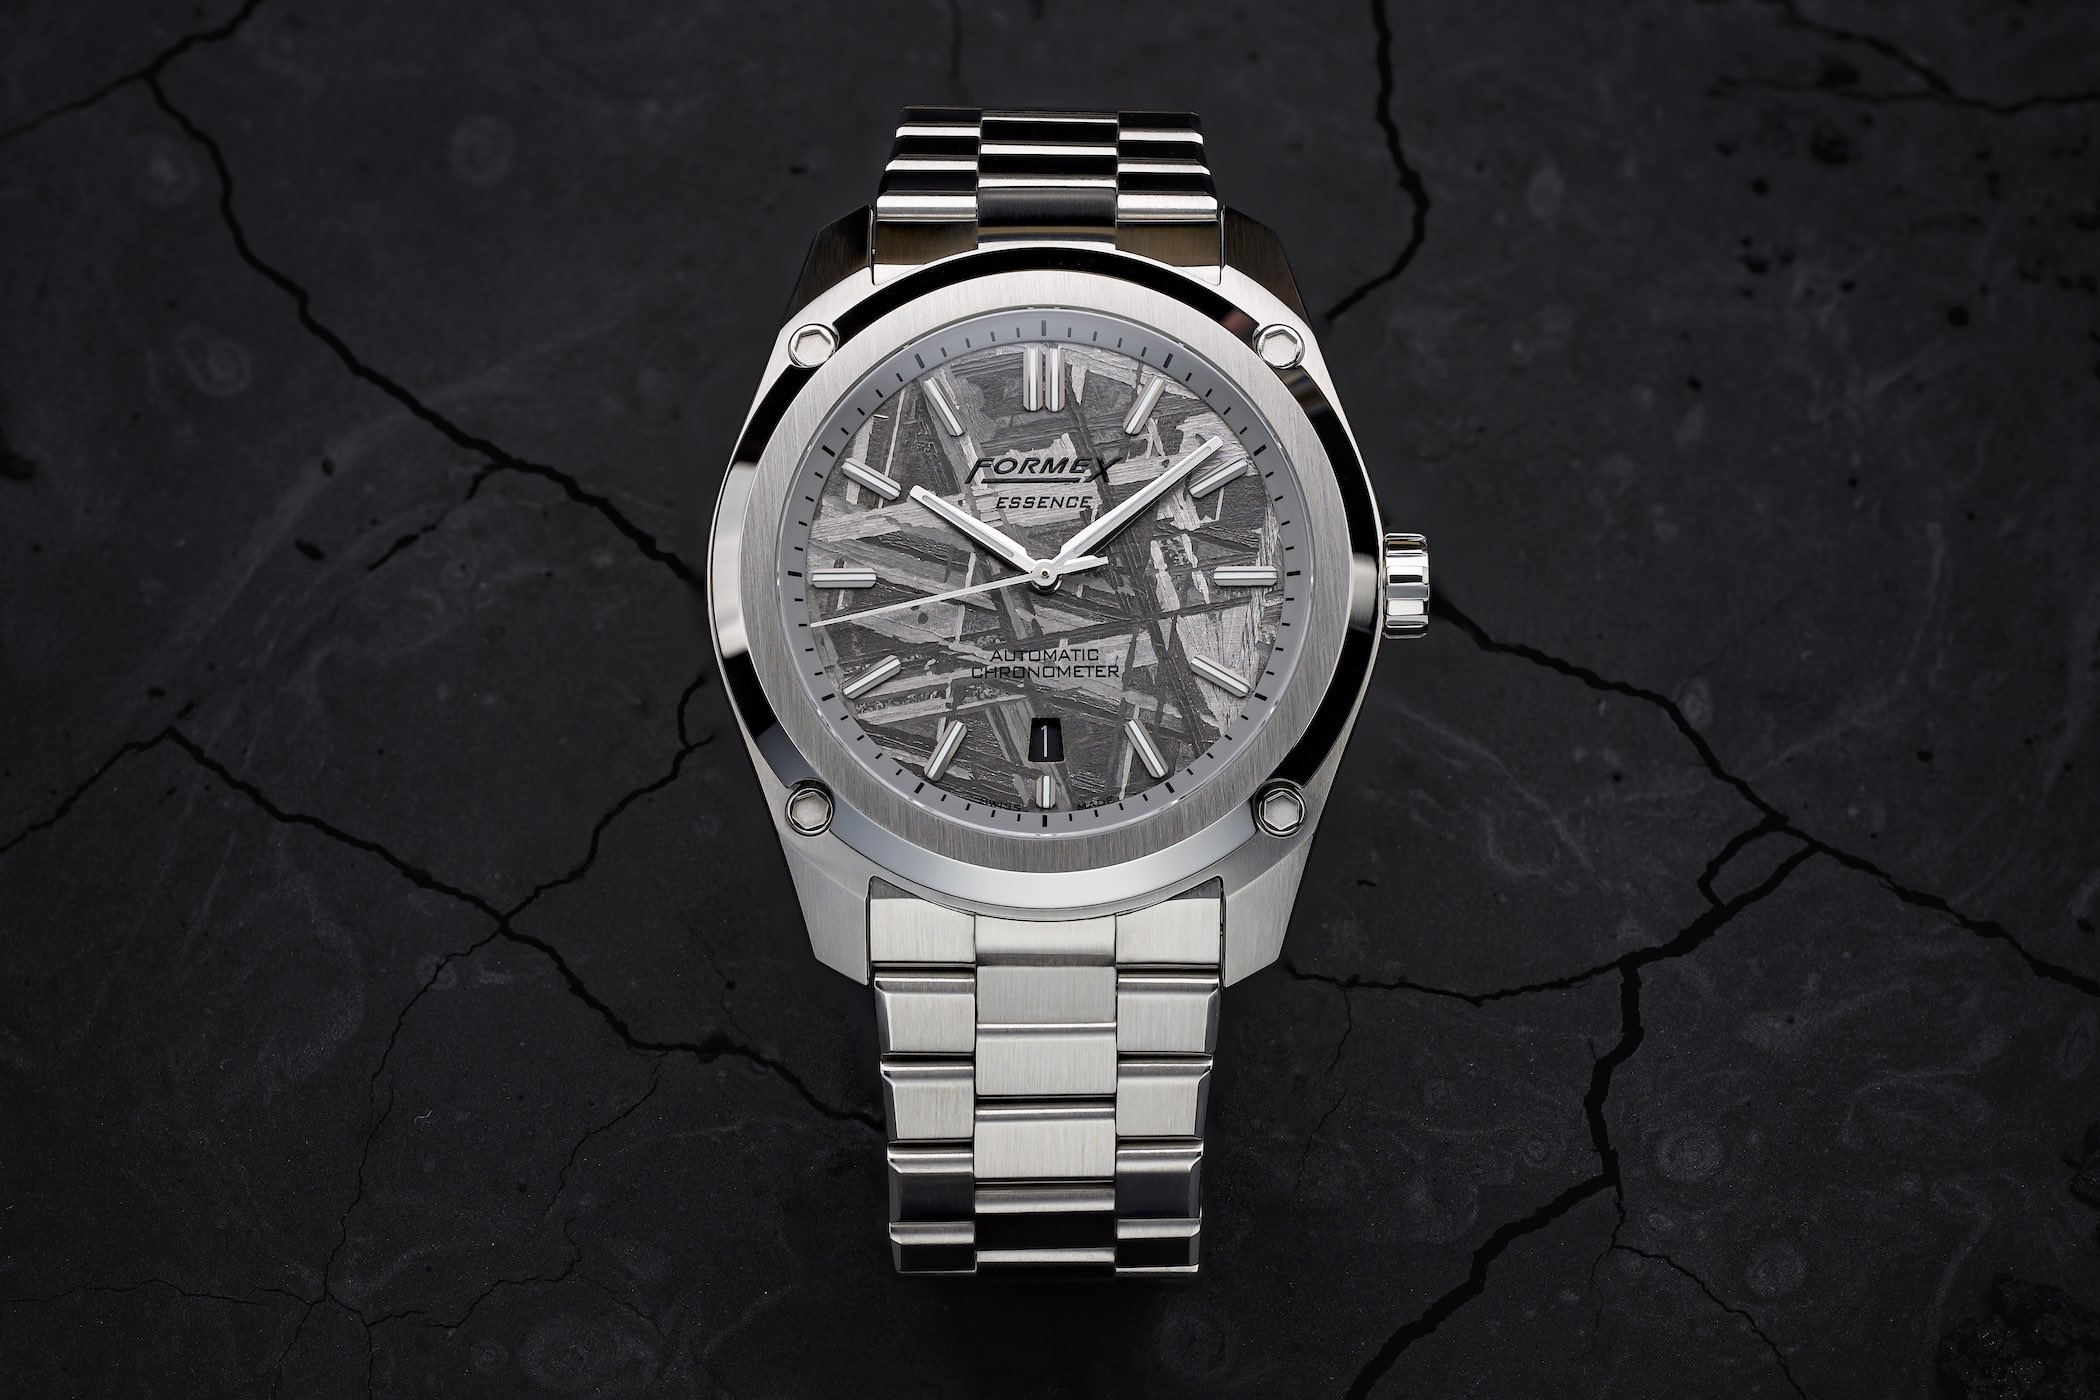 Formex Essence Space Rock Automatic Chronometer